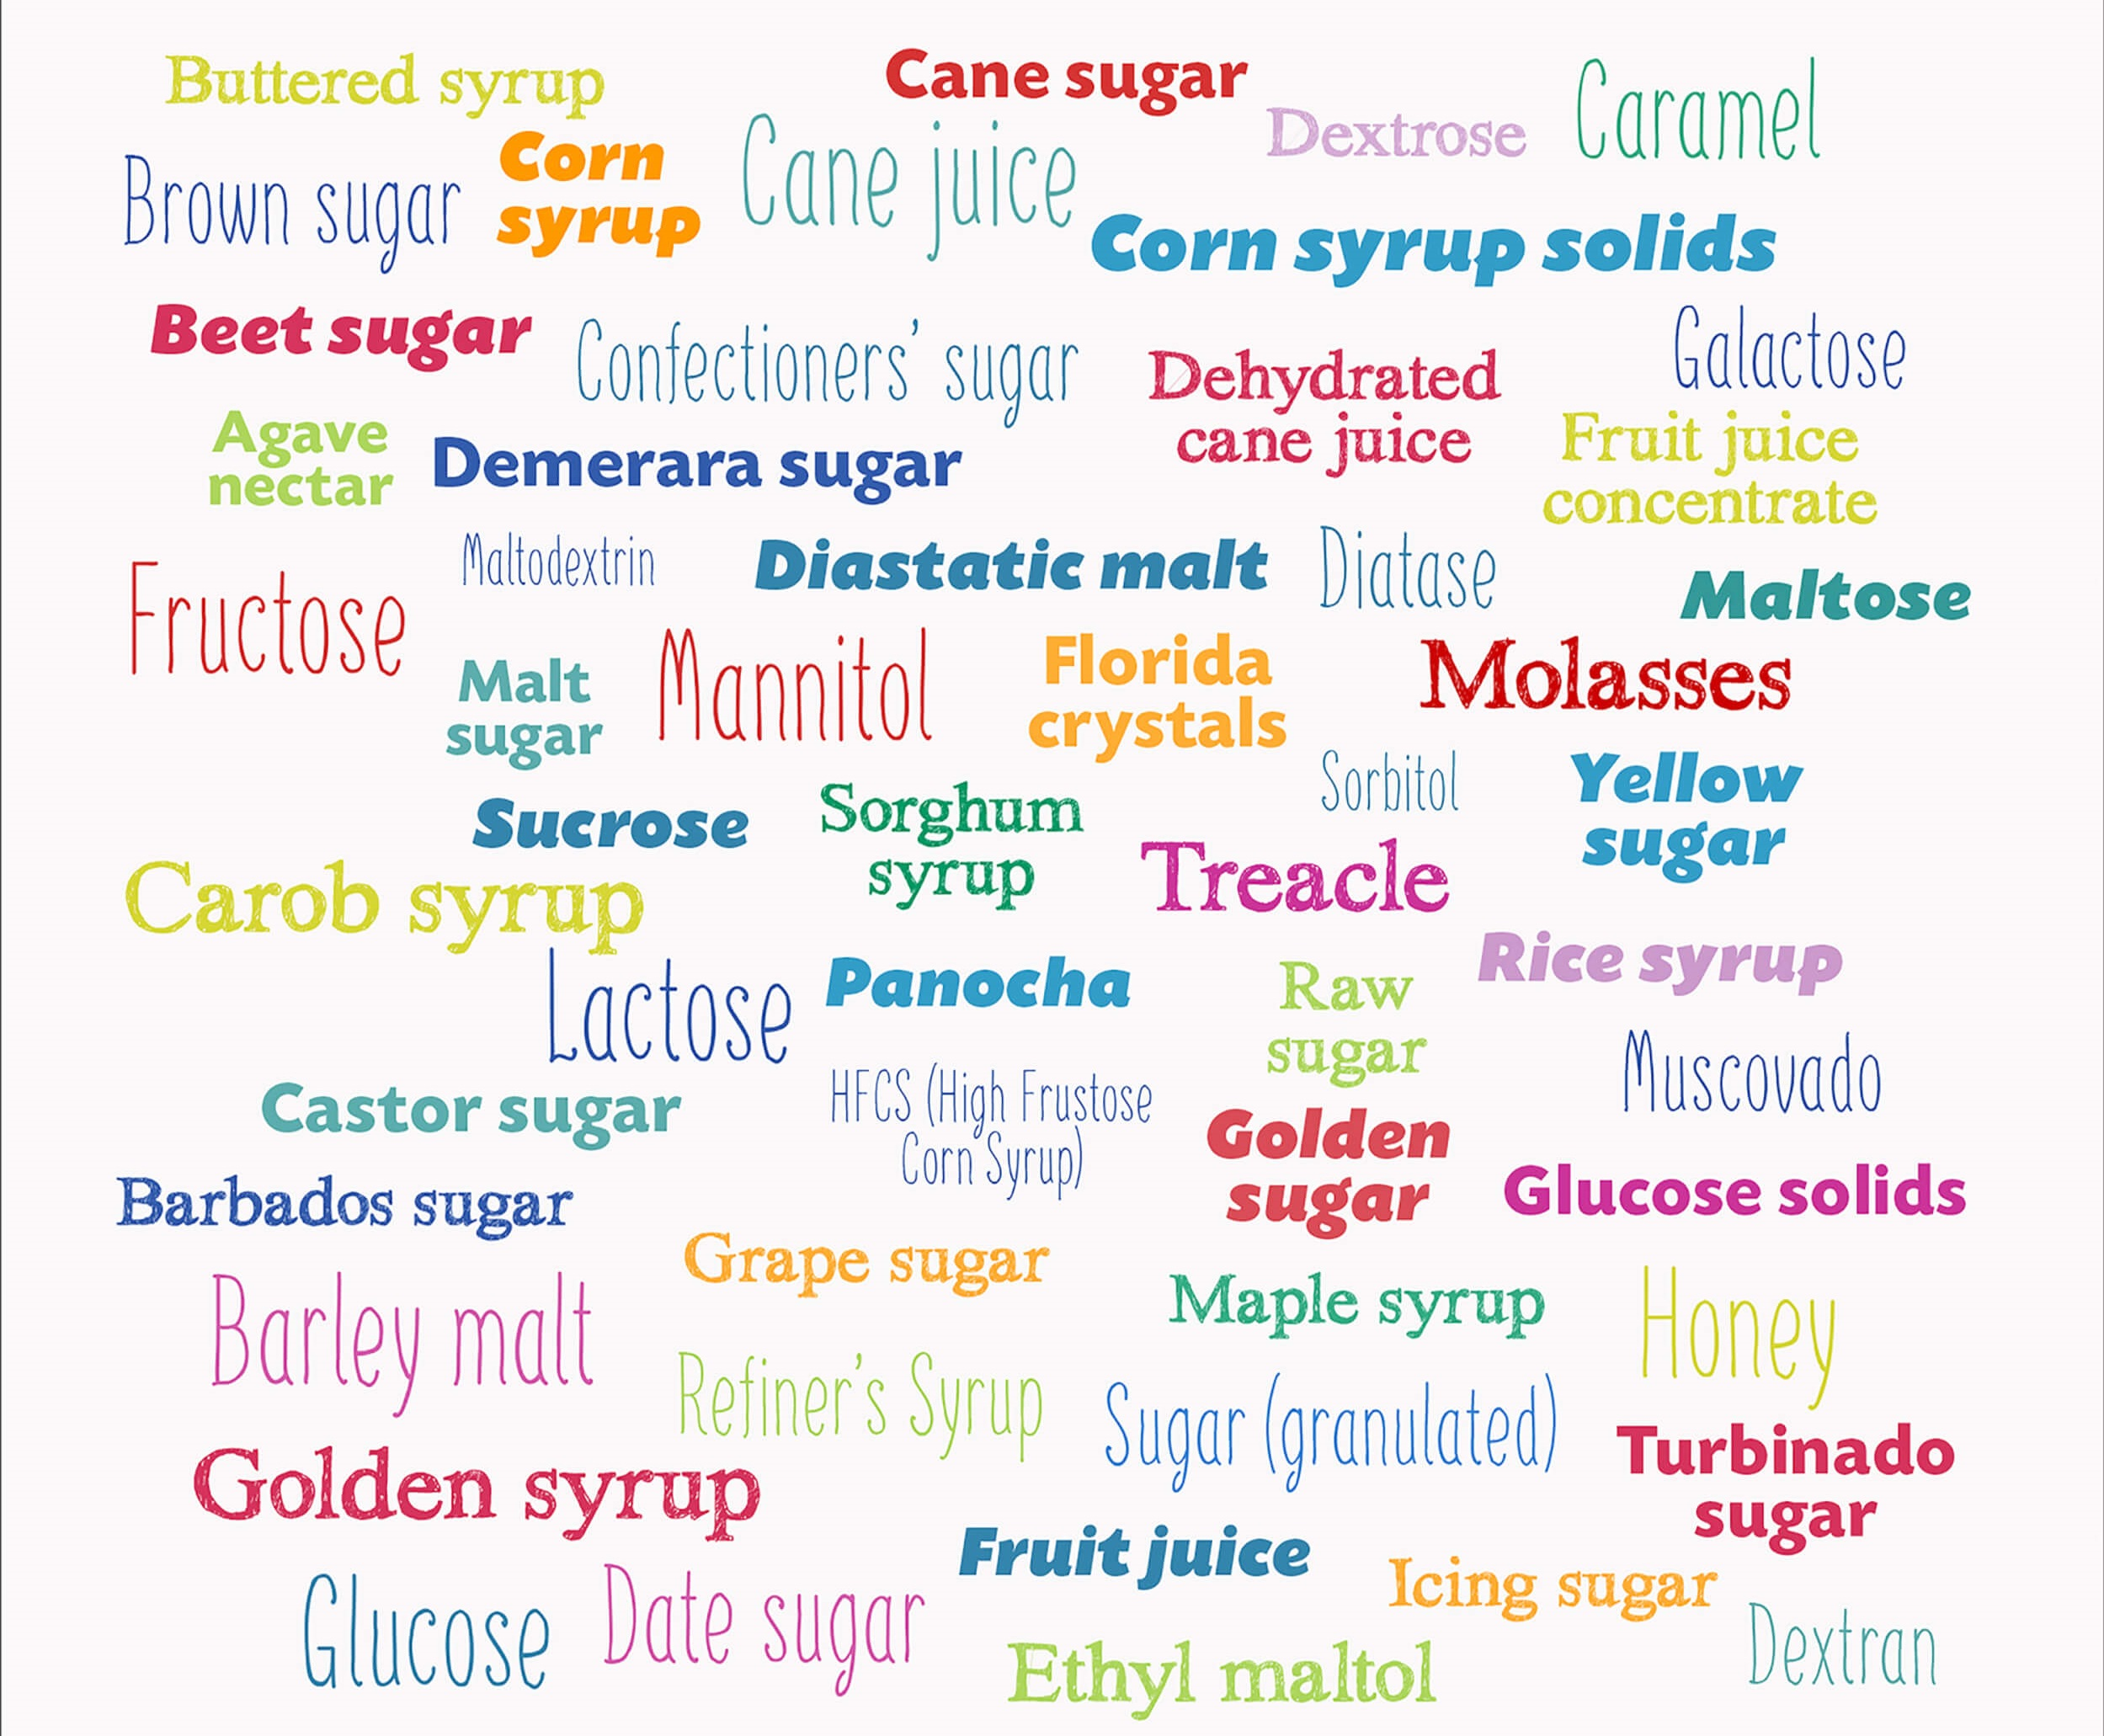 56 alternative names for sugar (http://oahuspineandrehab.com/wp-content/uploads/2015/05/Hidden-Sugar-.jpg)